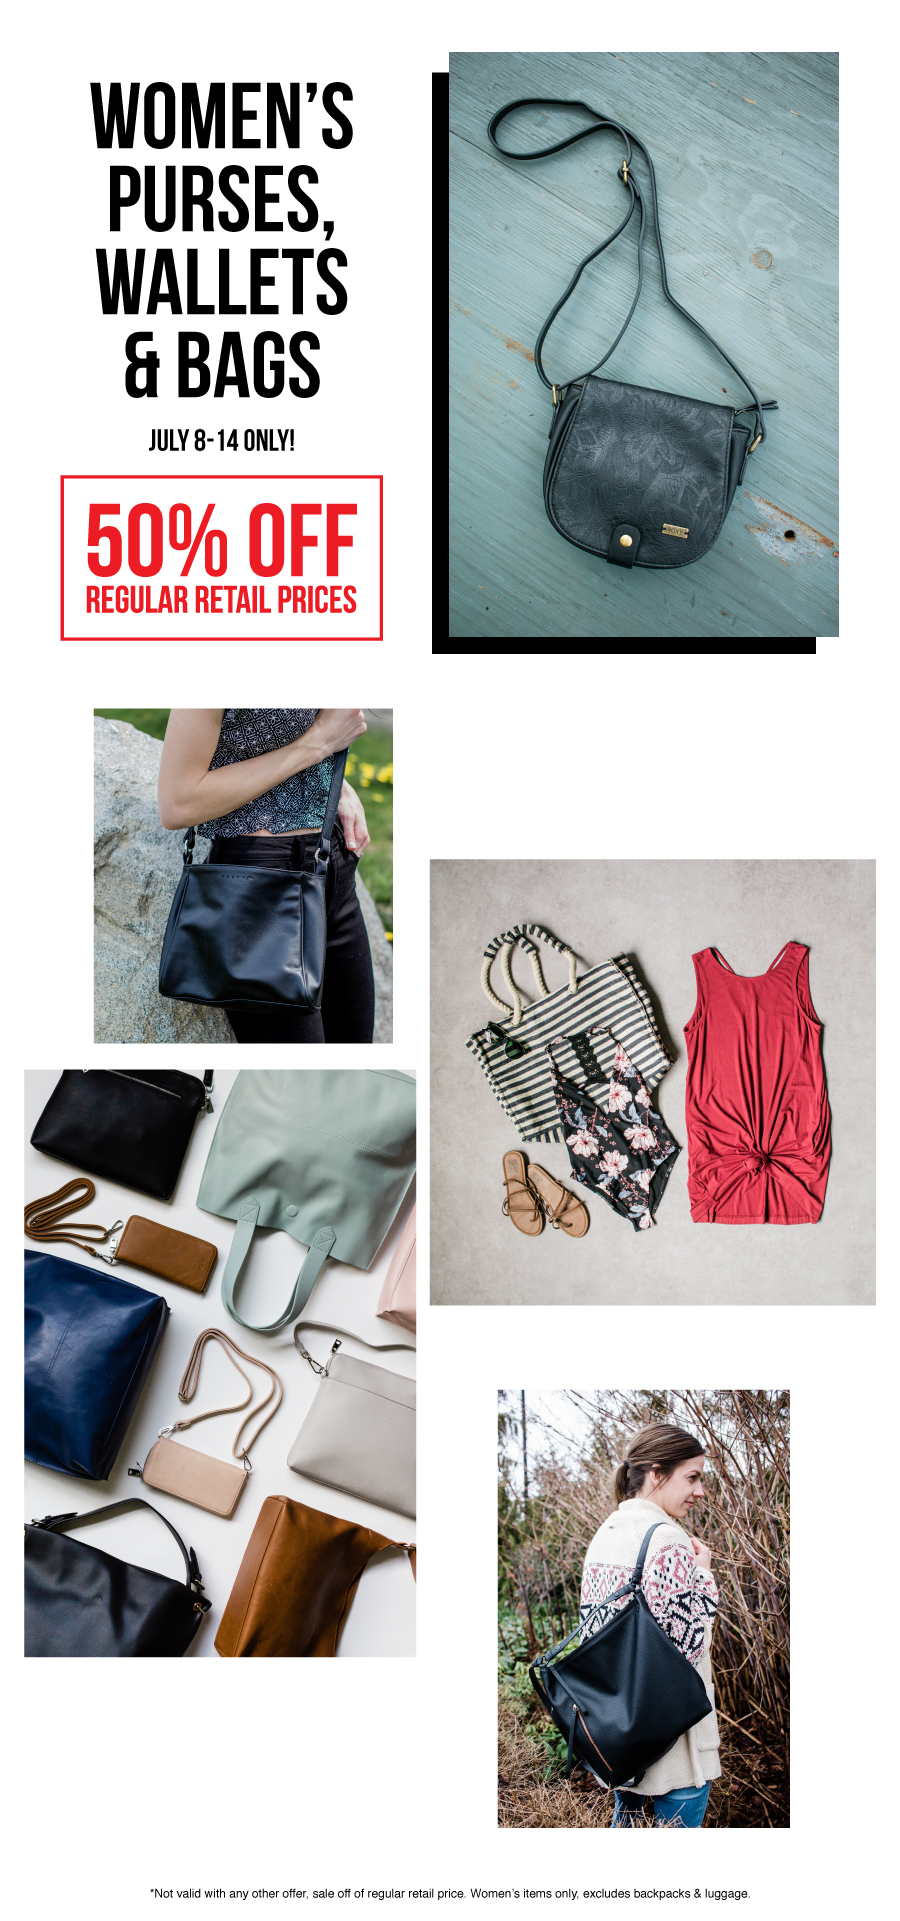 The deal of the week at Premium Label Outlet from July 8-14 is 50% off WOMEN'S bags, wallets and purses!